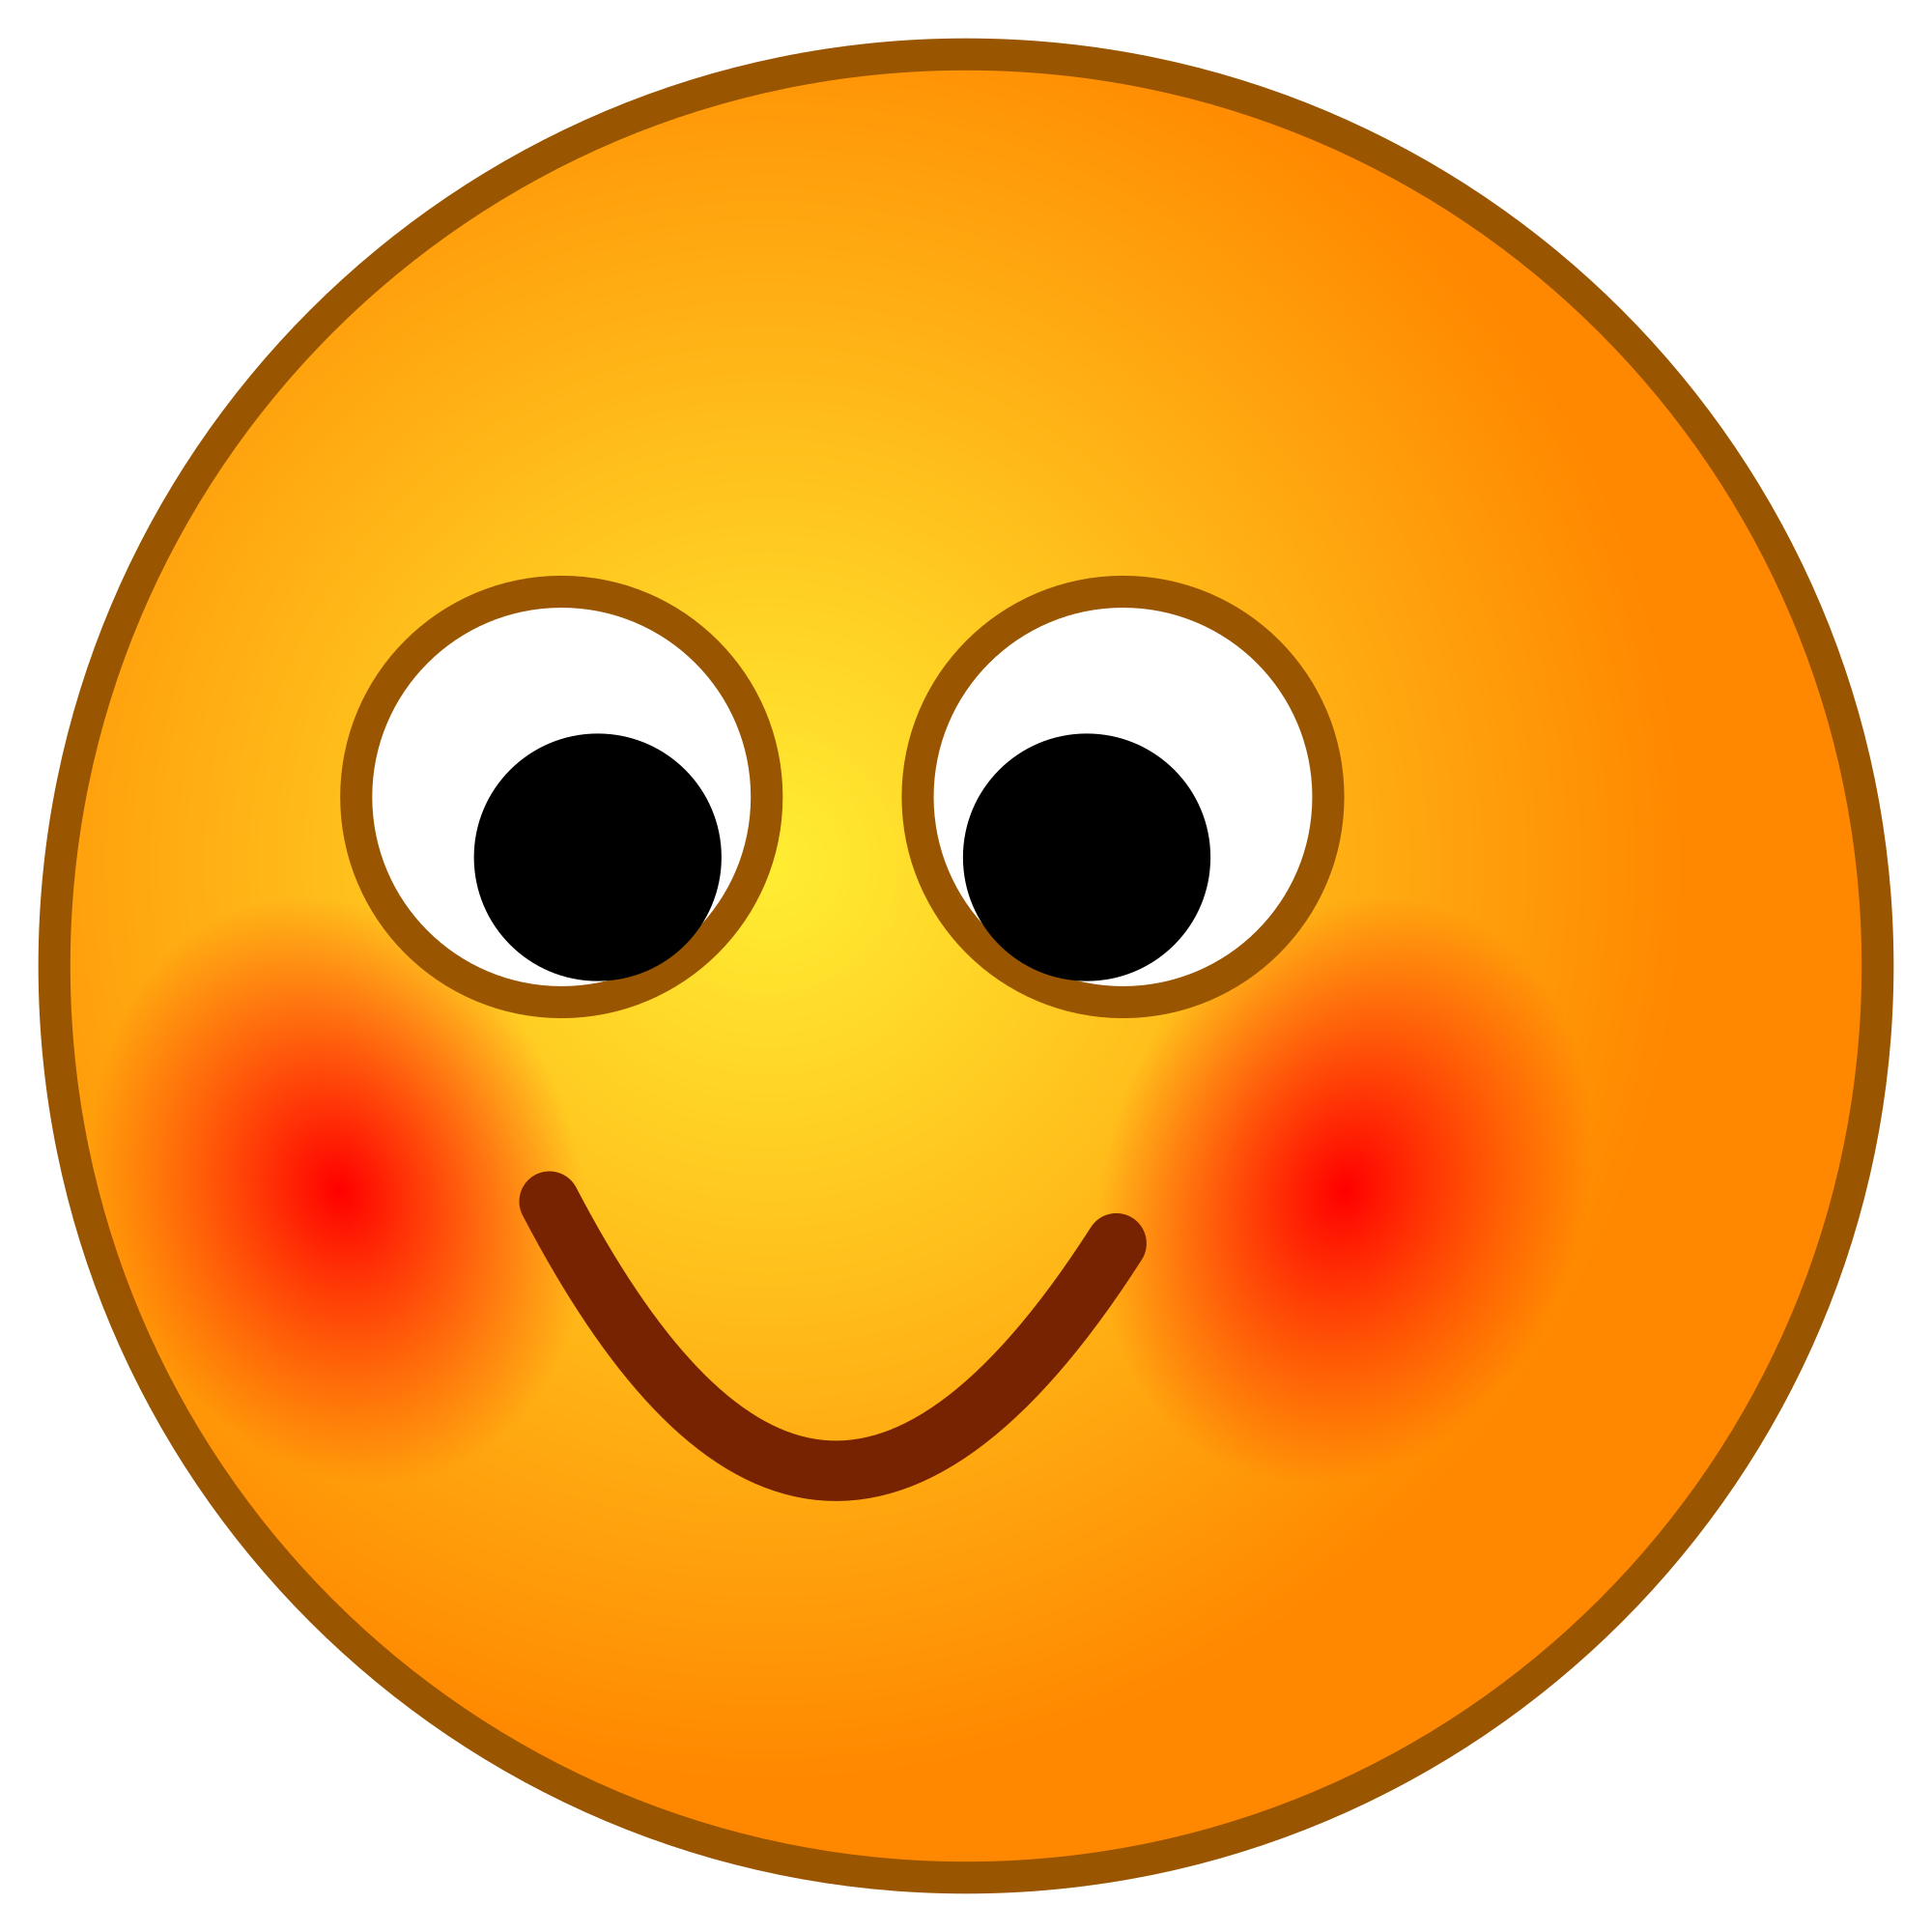 Shy clipart shyness. Png transparent images pluspng